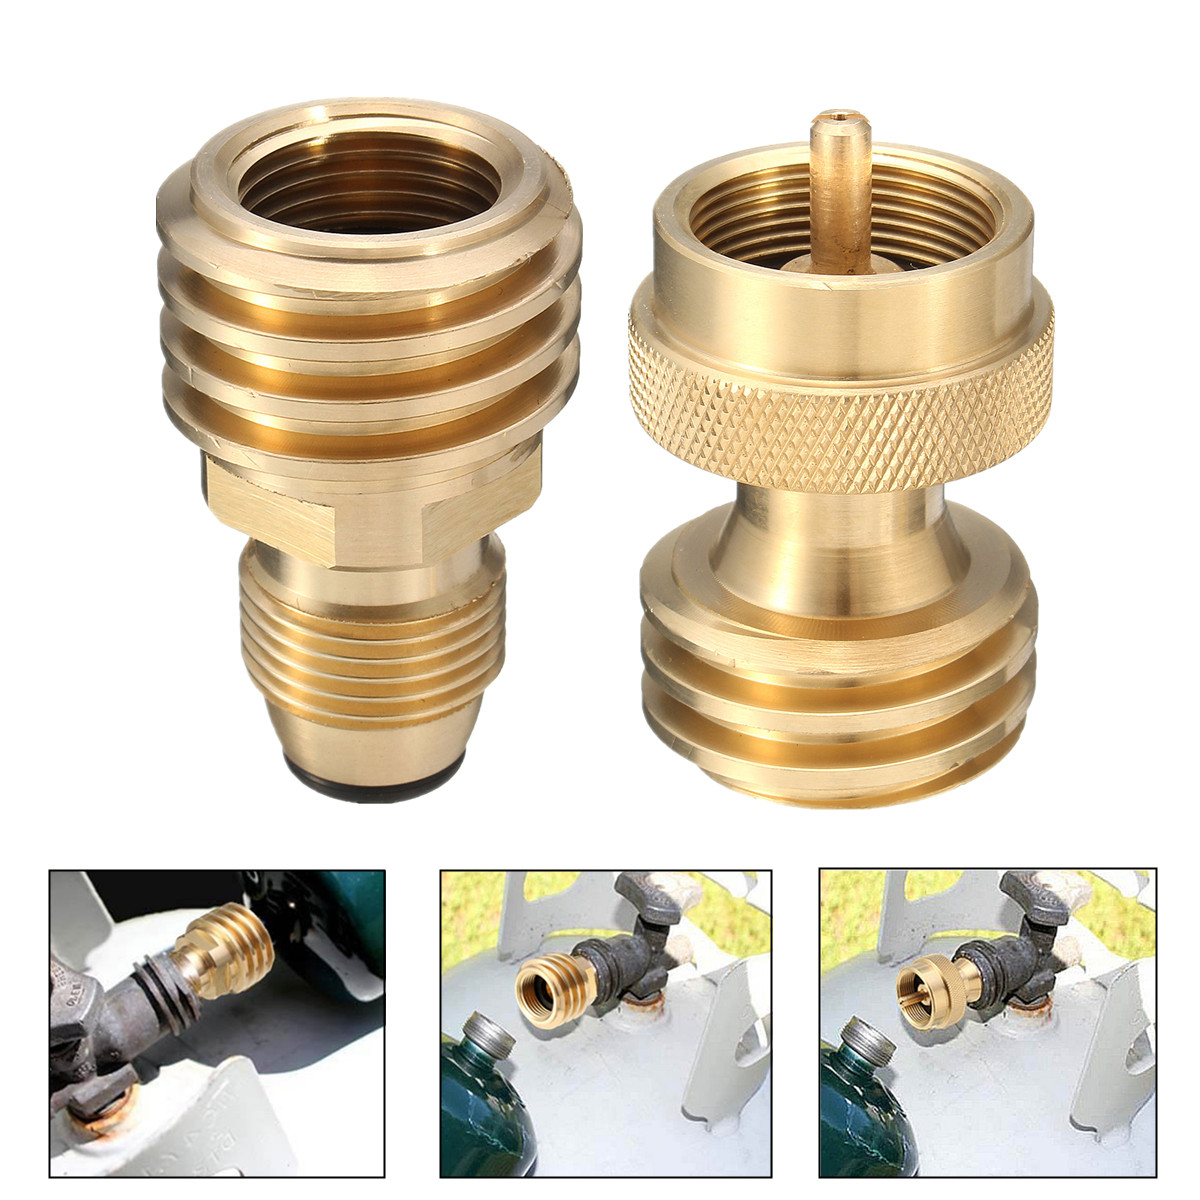 Brass Propane Bottle Refill Adapter Regulator Valve Fits 1LB Tank Cylinder BBQ Accessory